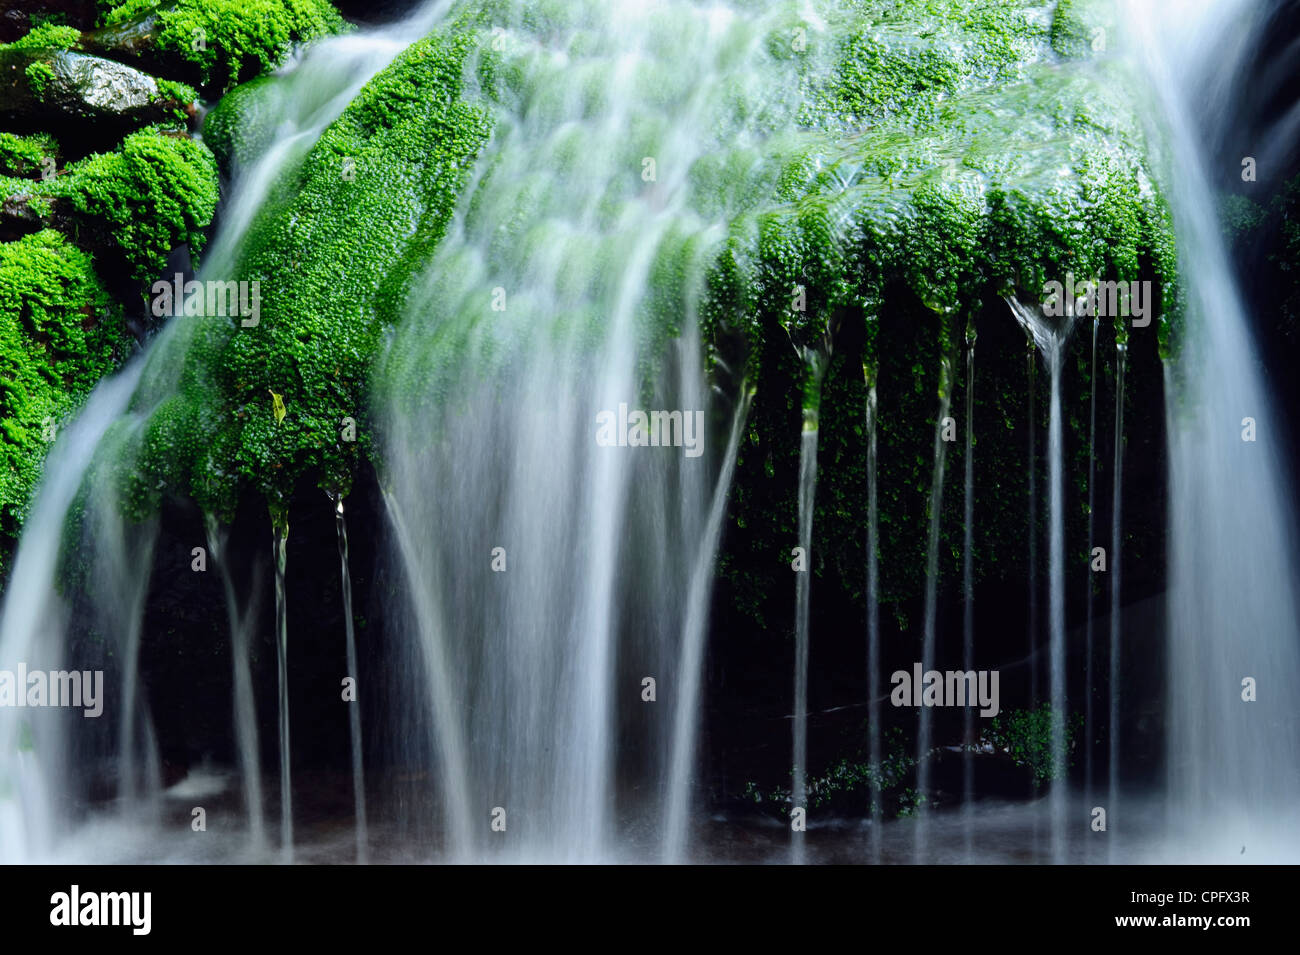 Cascade in Black Clough in the Forest of Bowland Lancashire England - Stock Image